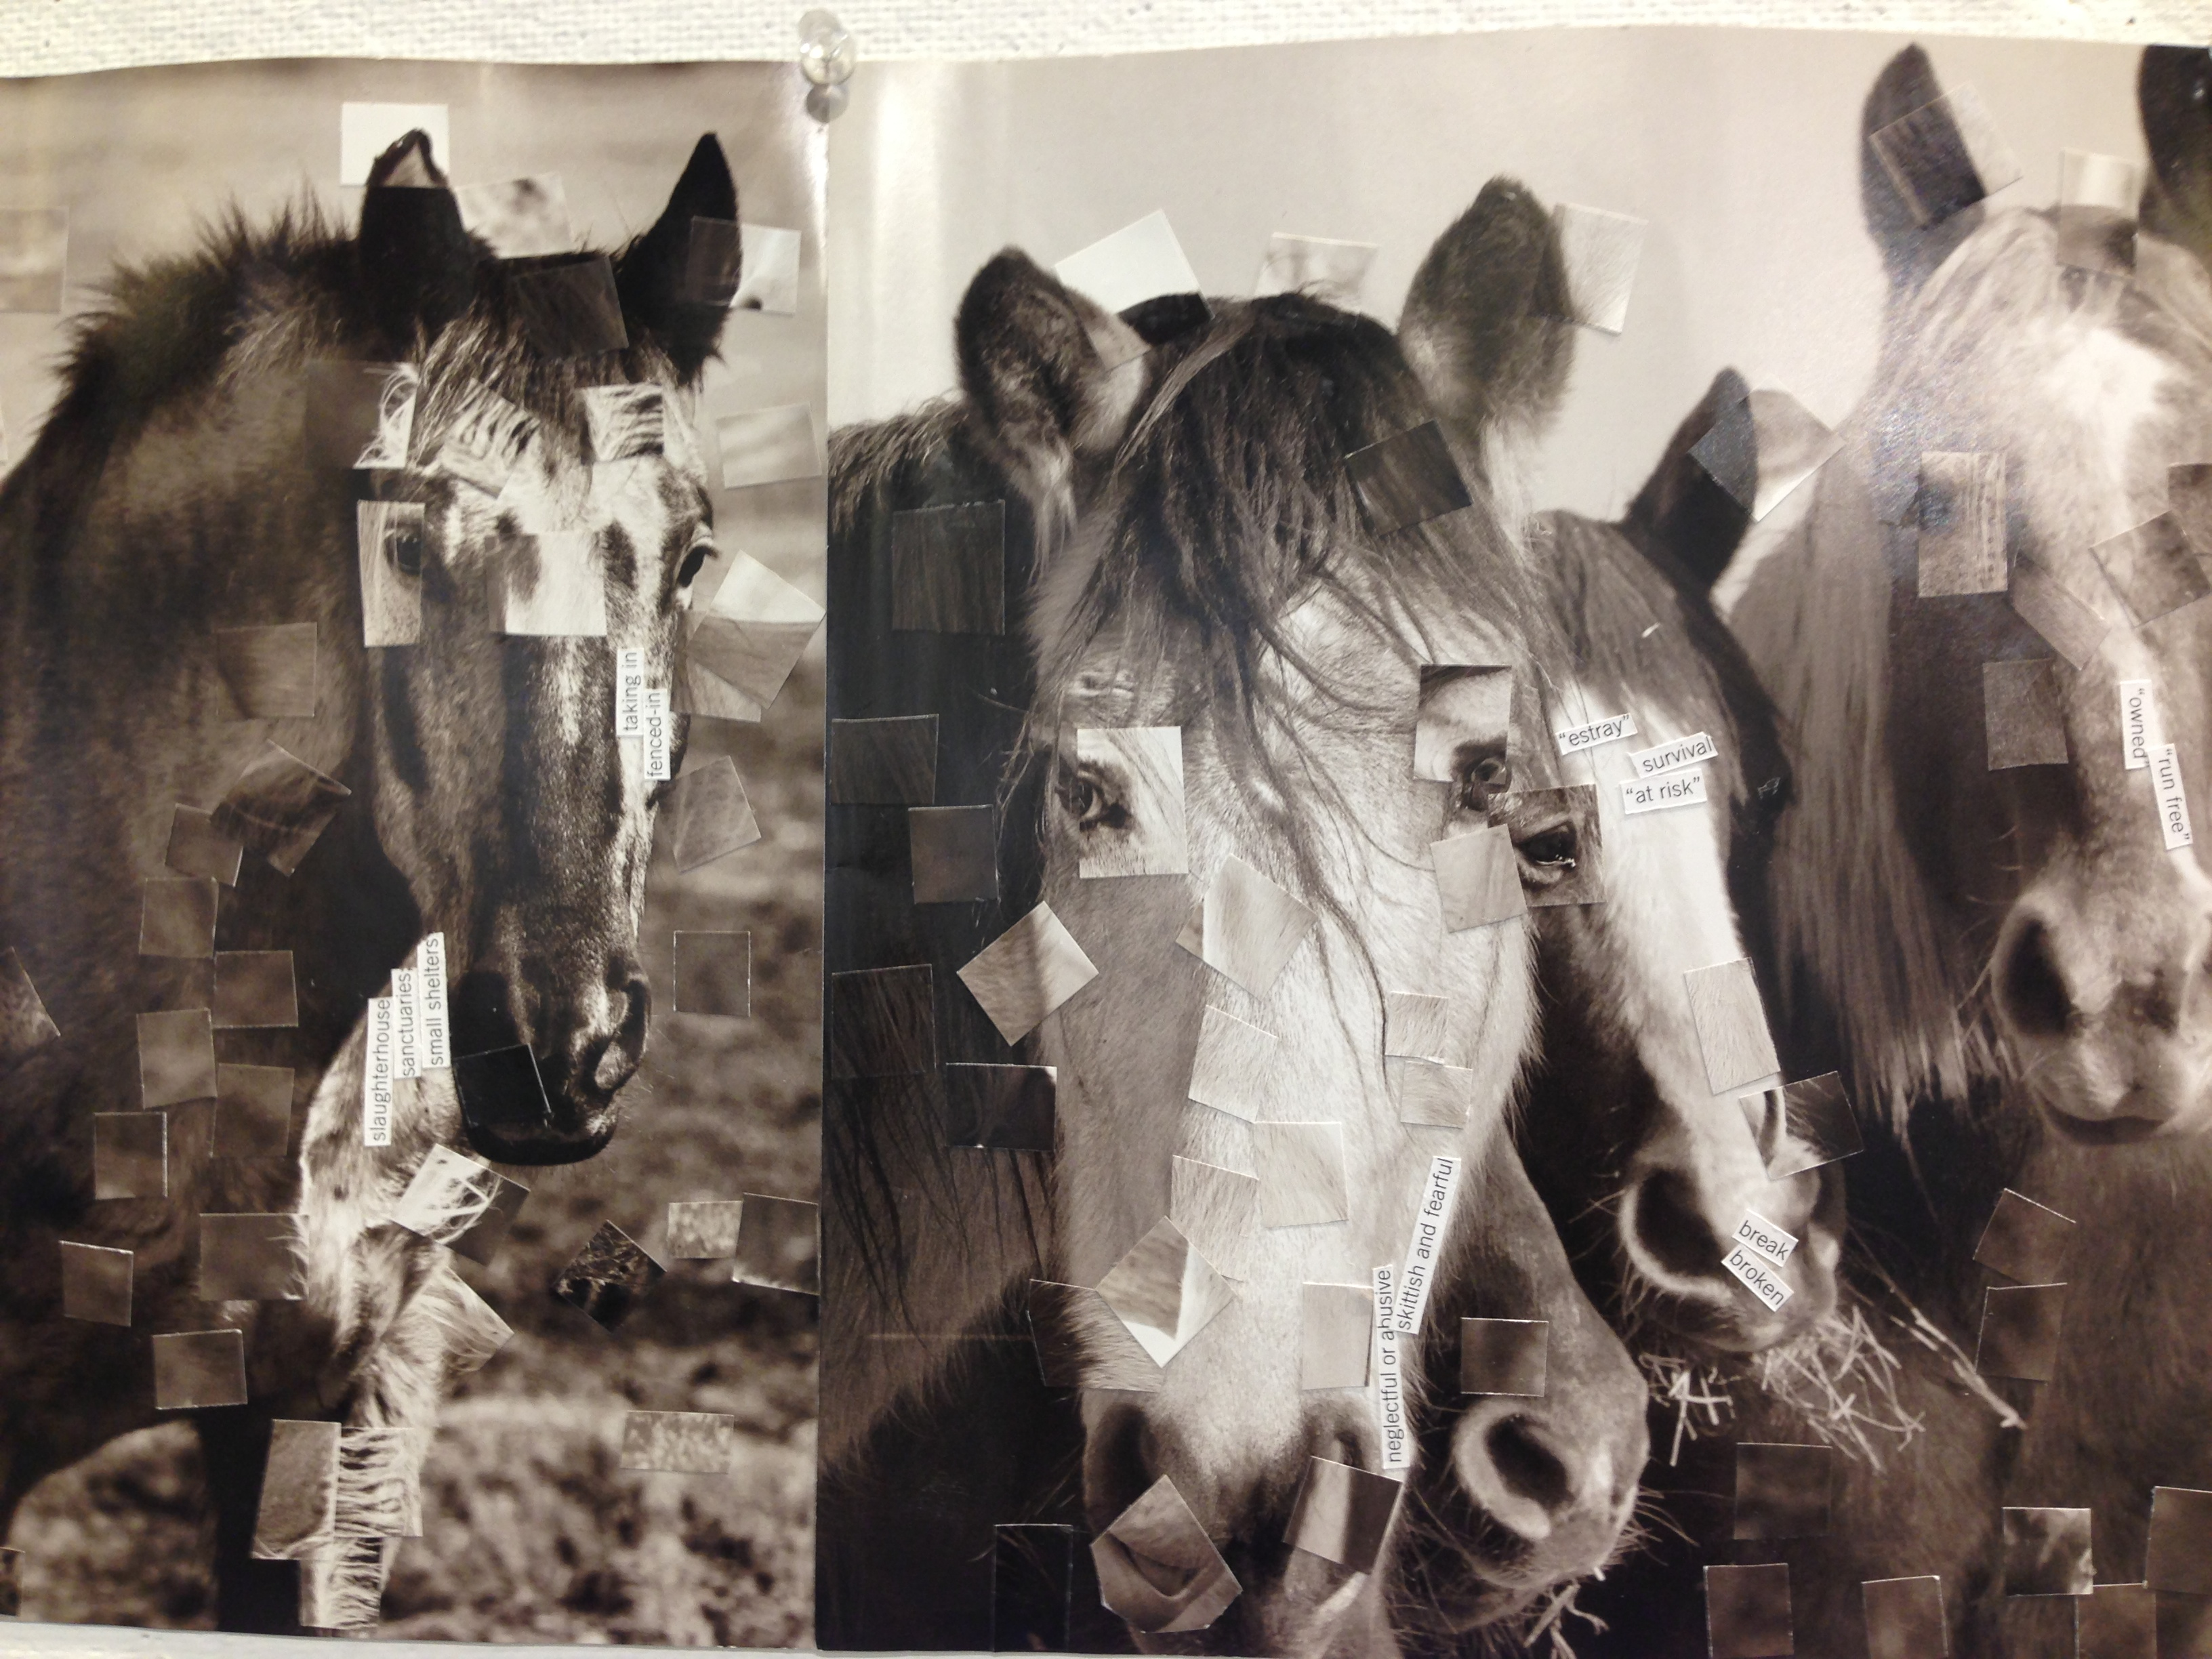 Book Alteration Project Wild Horses Endangered Beauty Bai